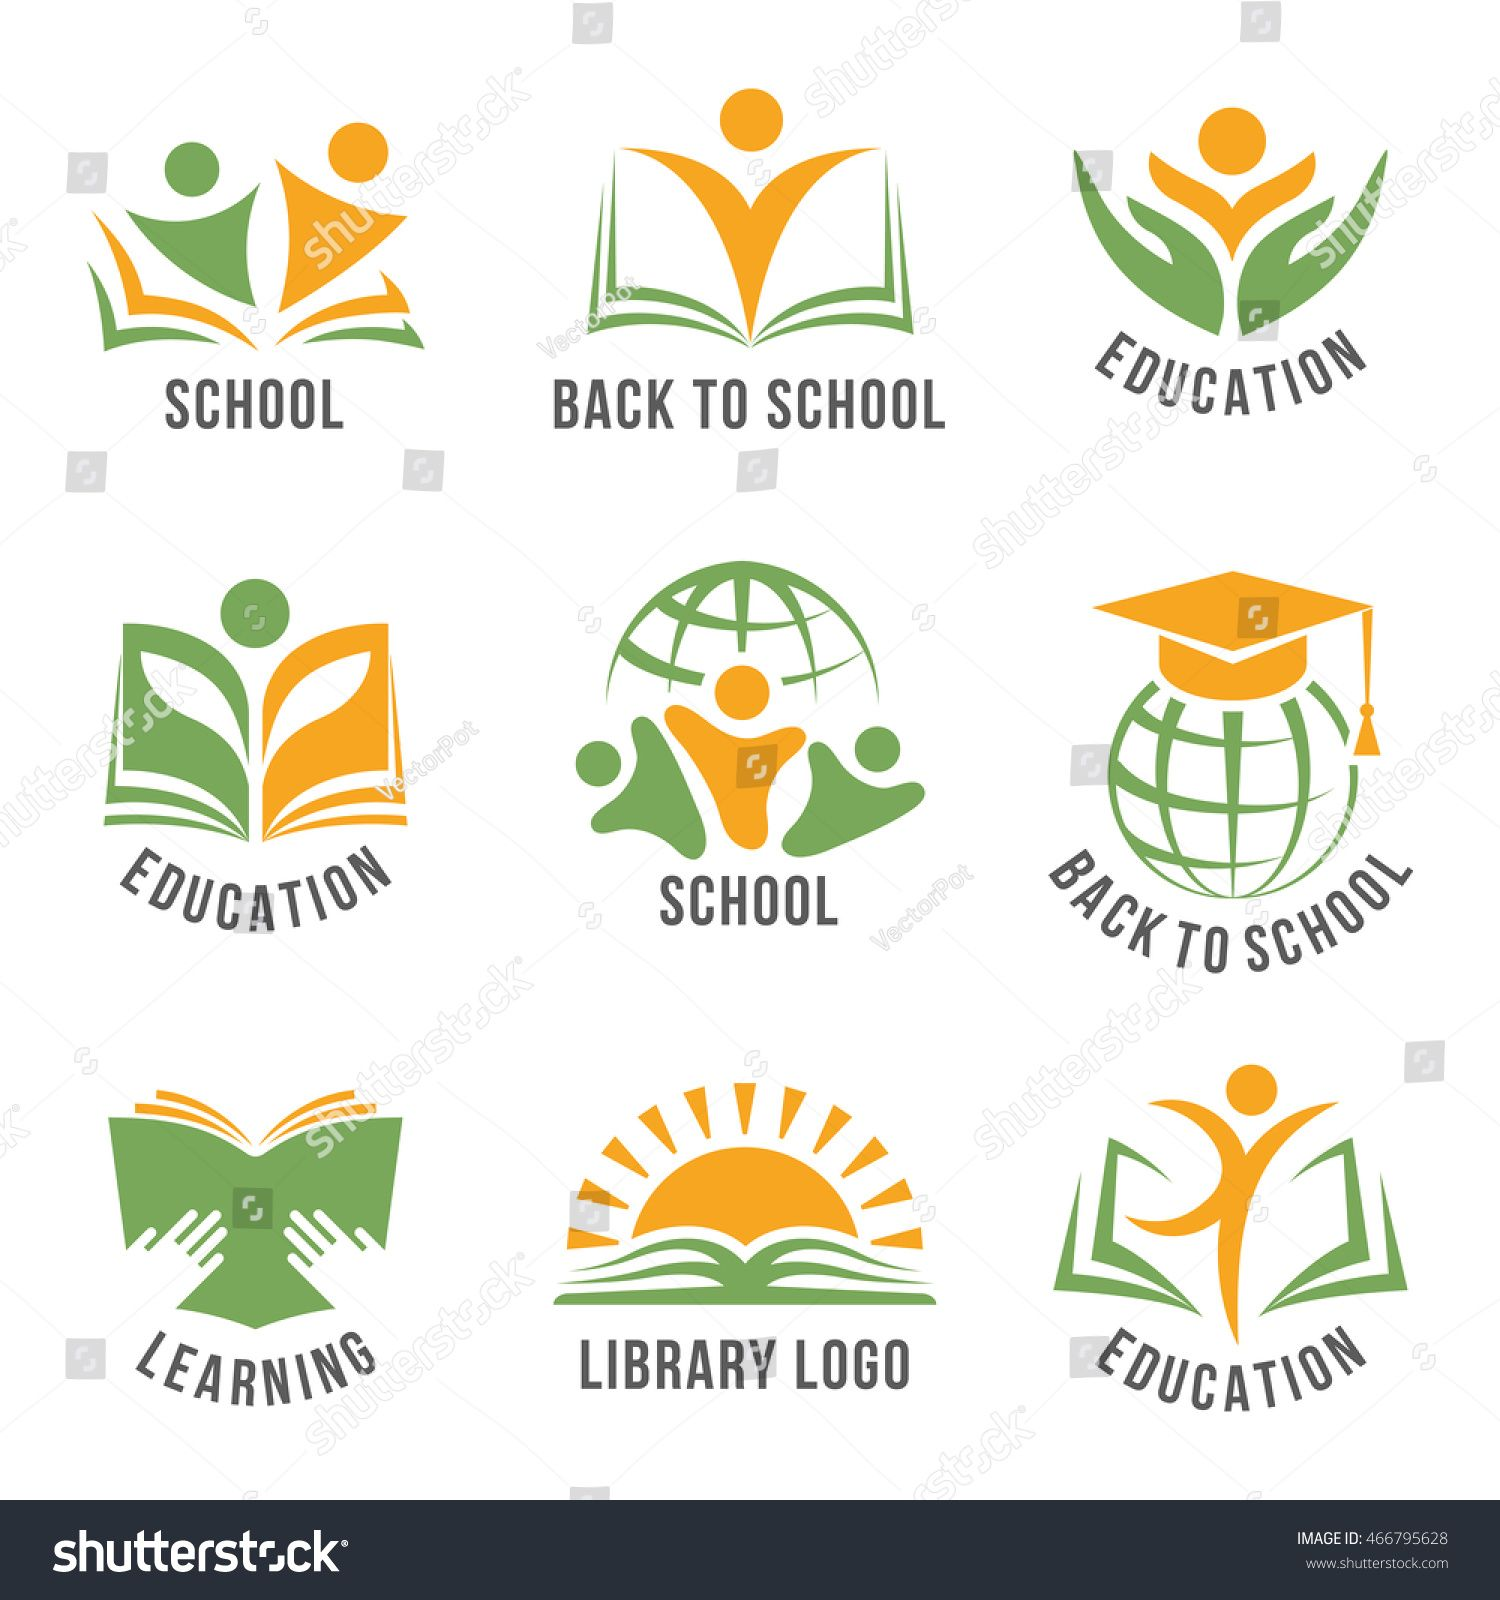 Set Of Colorful School Logos Flat Isolated Green And Orange Vector